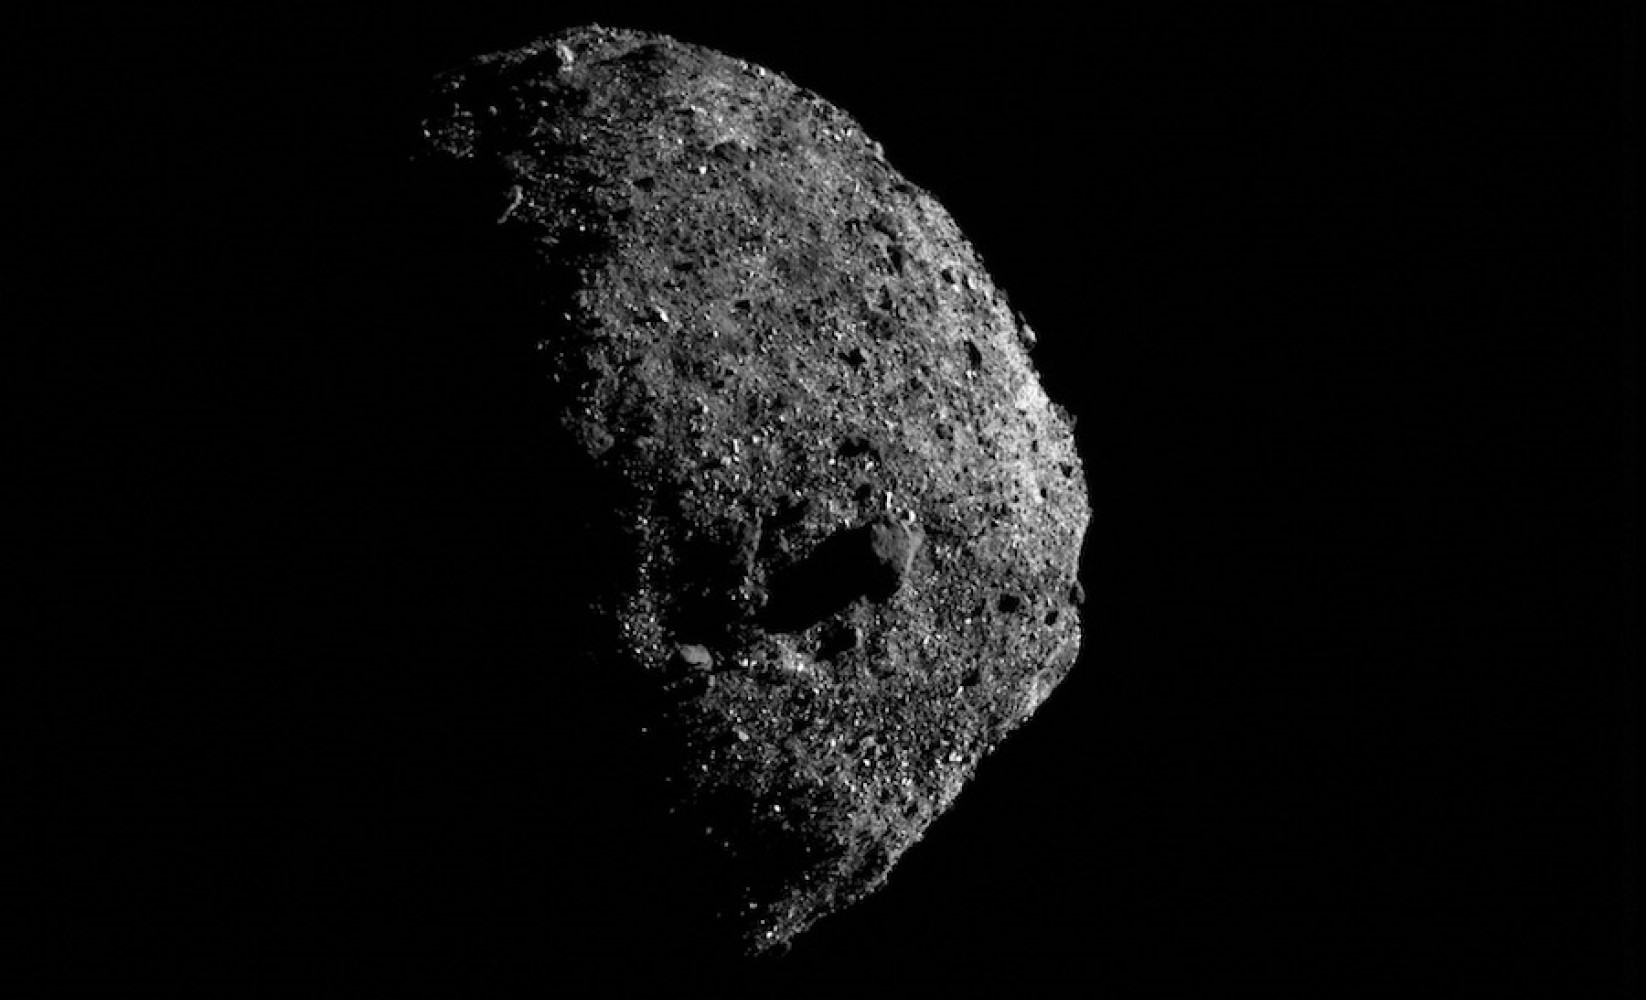 Asteroids 101